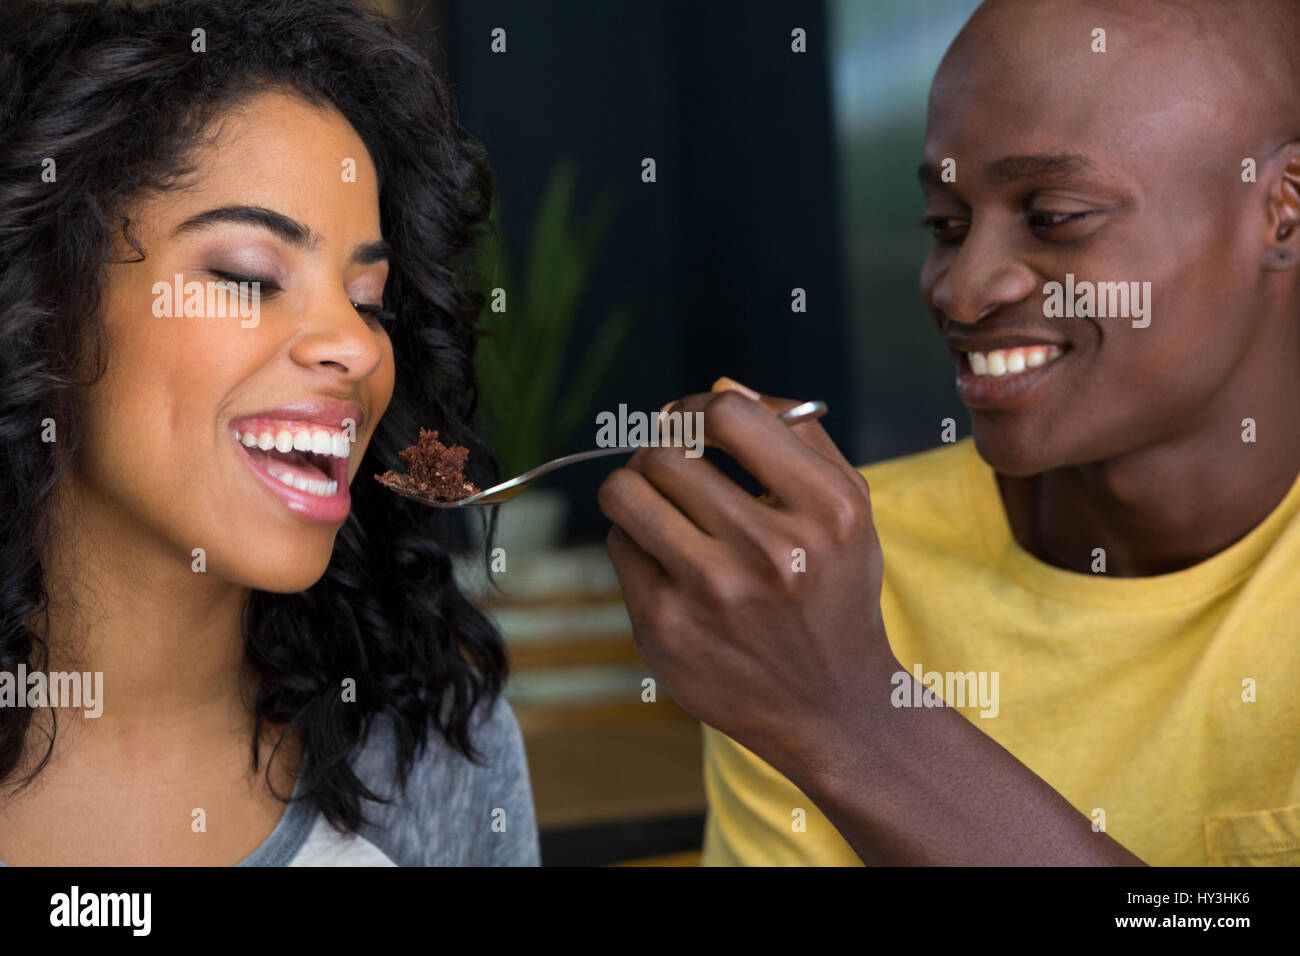 Loving young man feeding dessert to woman in coffee shop - Stock Image